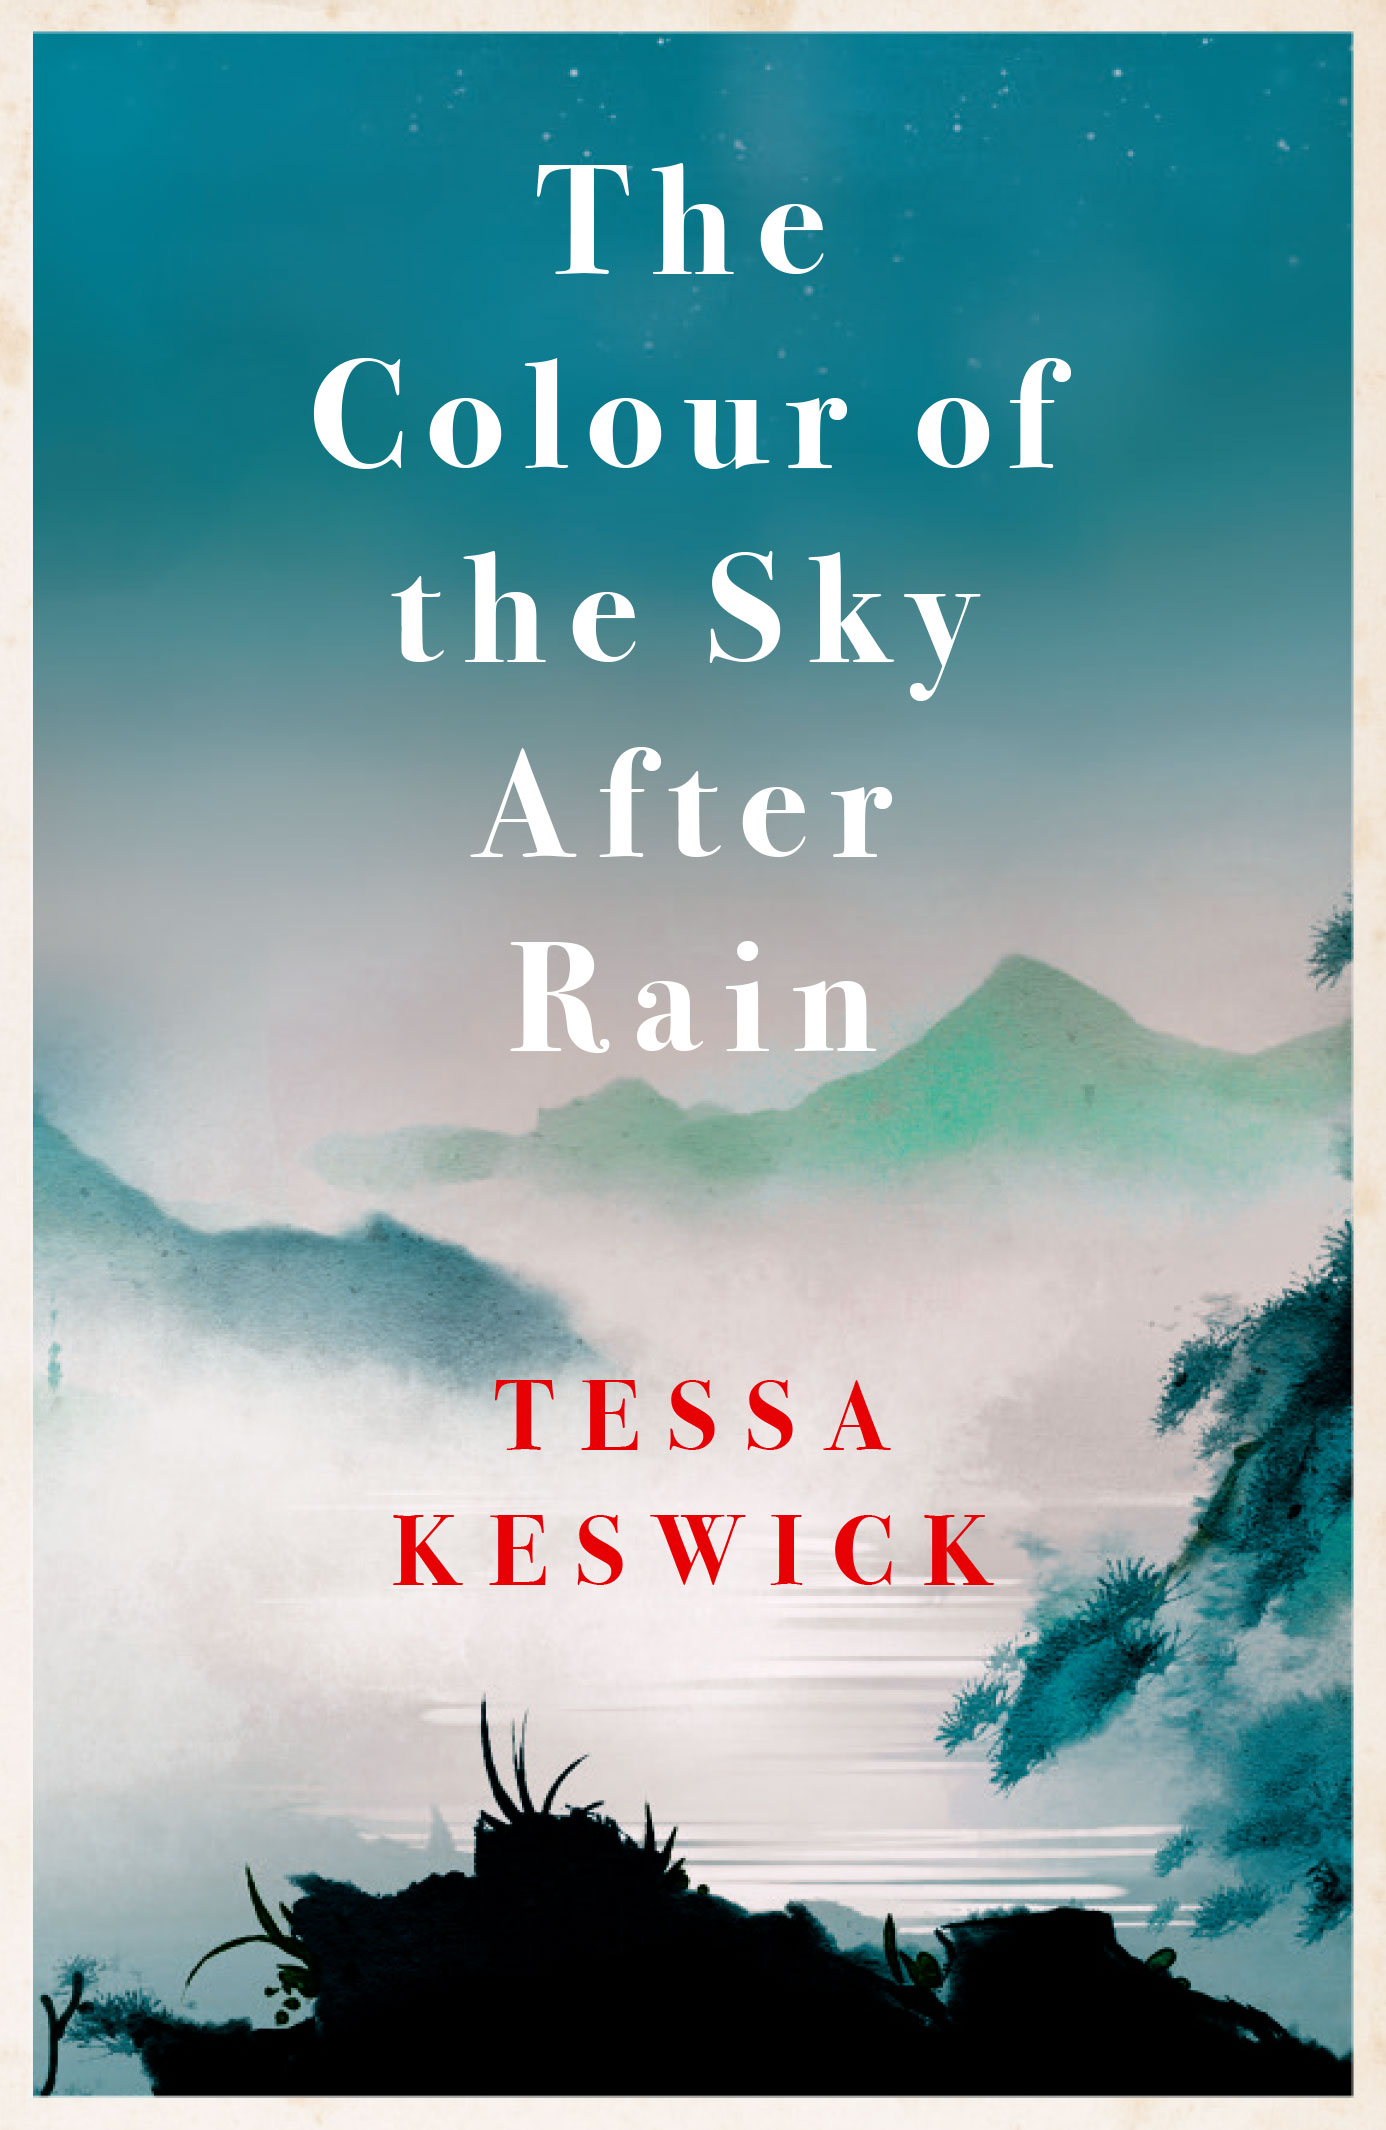 Tessa Keswick The Colour of the Sky After Rain - Book Cover